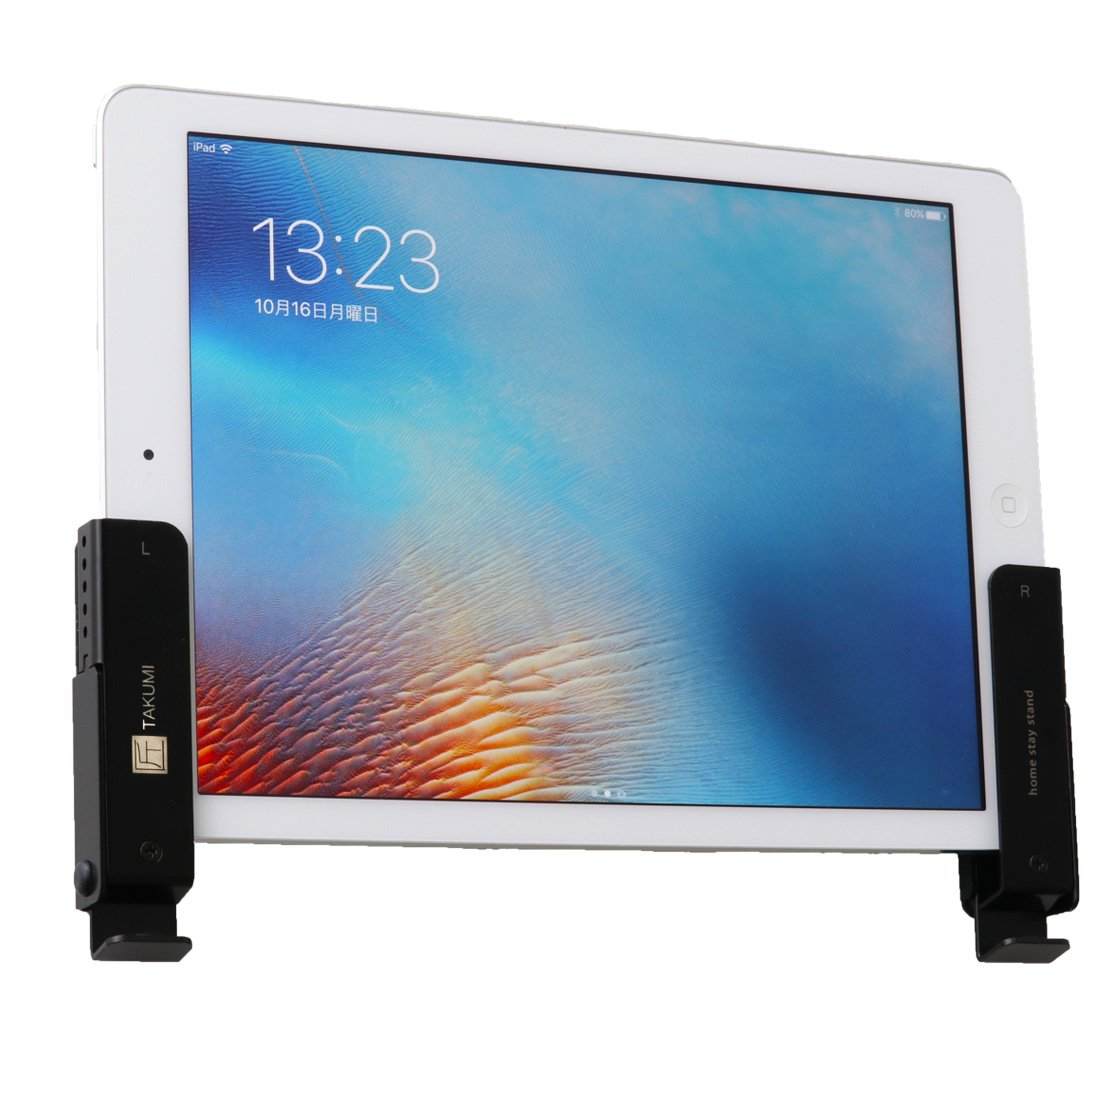 Home Stay Stand Takumi, Tablet Wall Mount, Tablet Stand, Made in Japan, Alx, Tablets, Smartphones, Smartphone Stand (Black) NAGAO INDUSTRY INC.